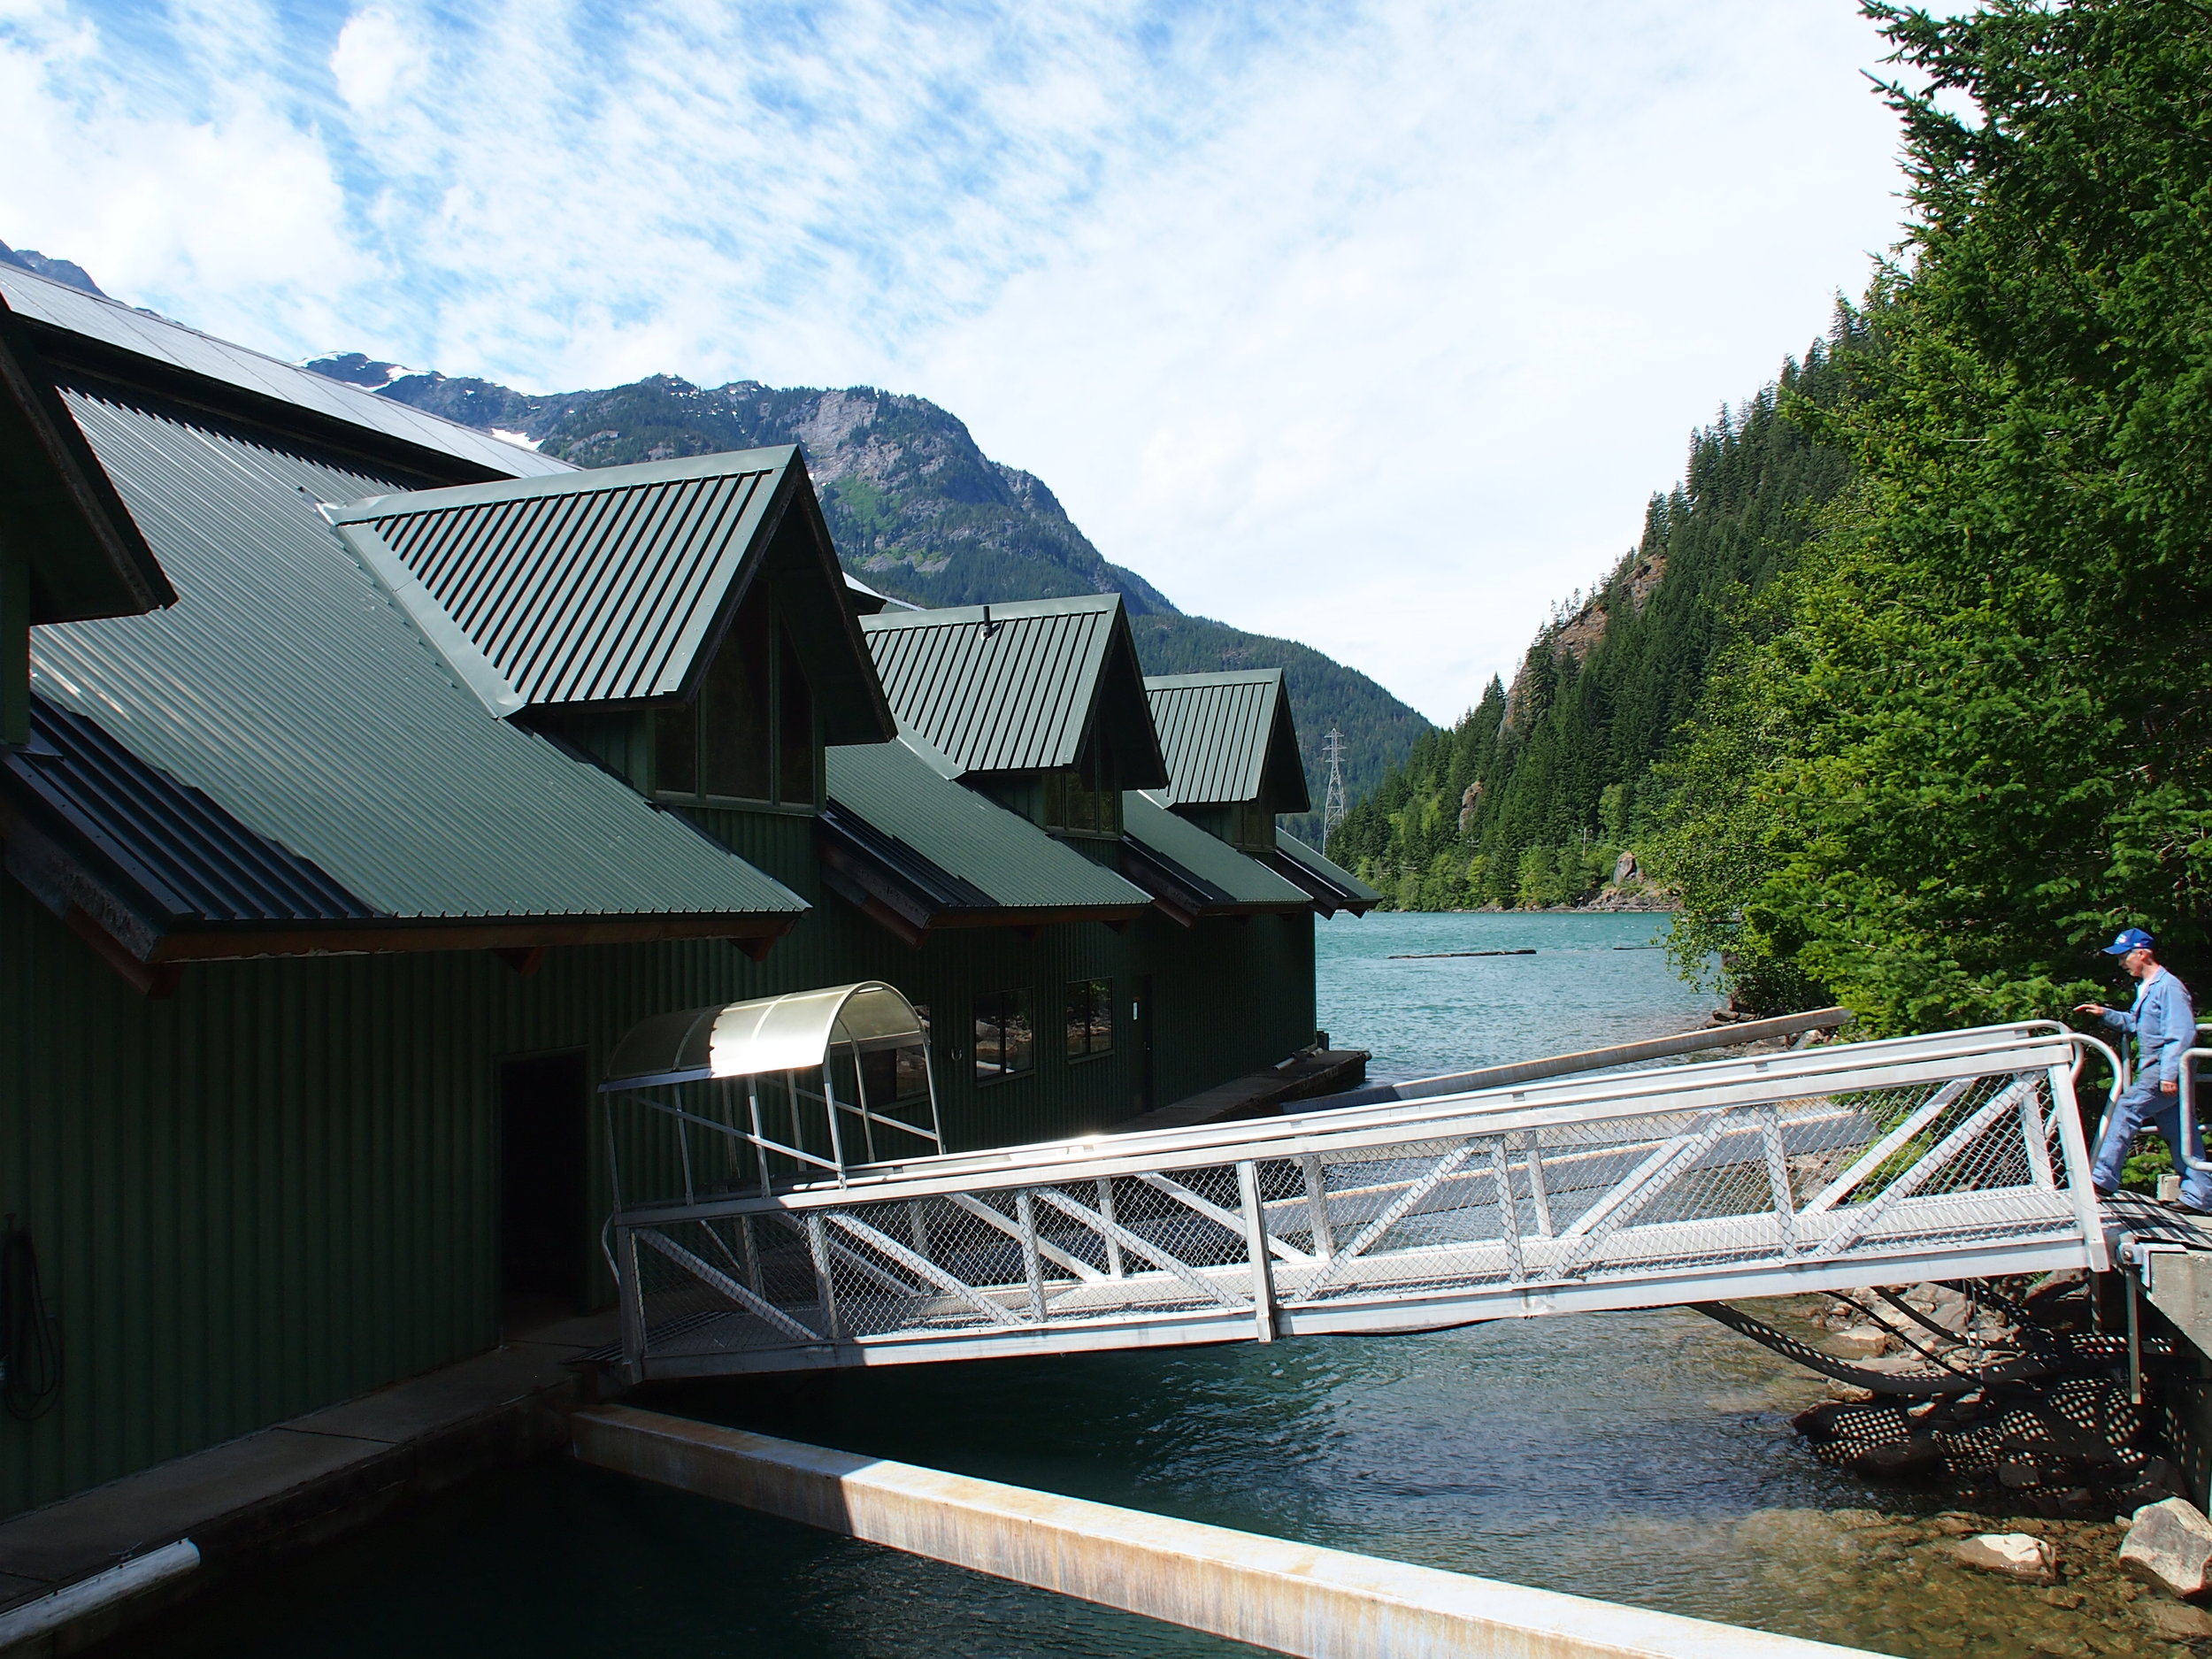 Ramp to the Boathouse